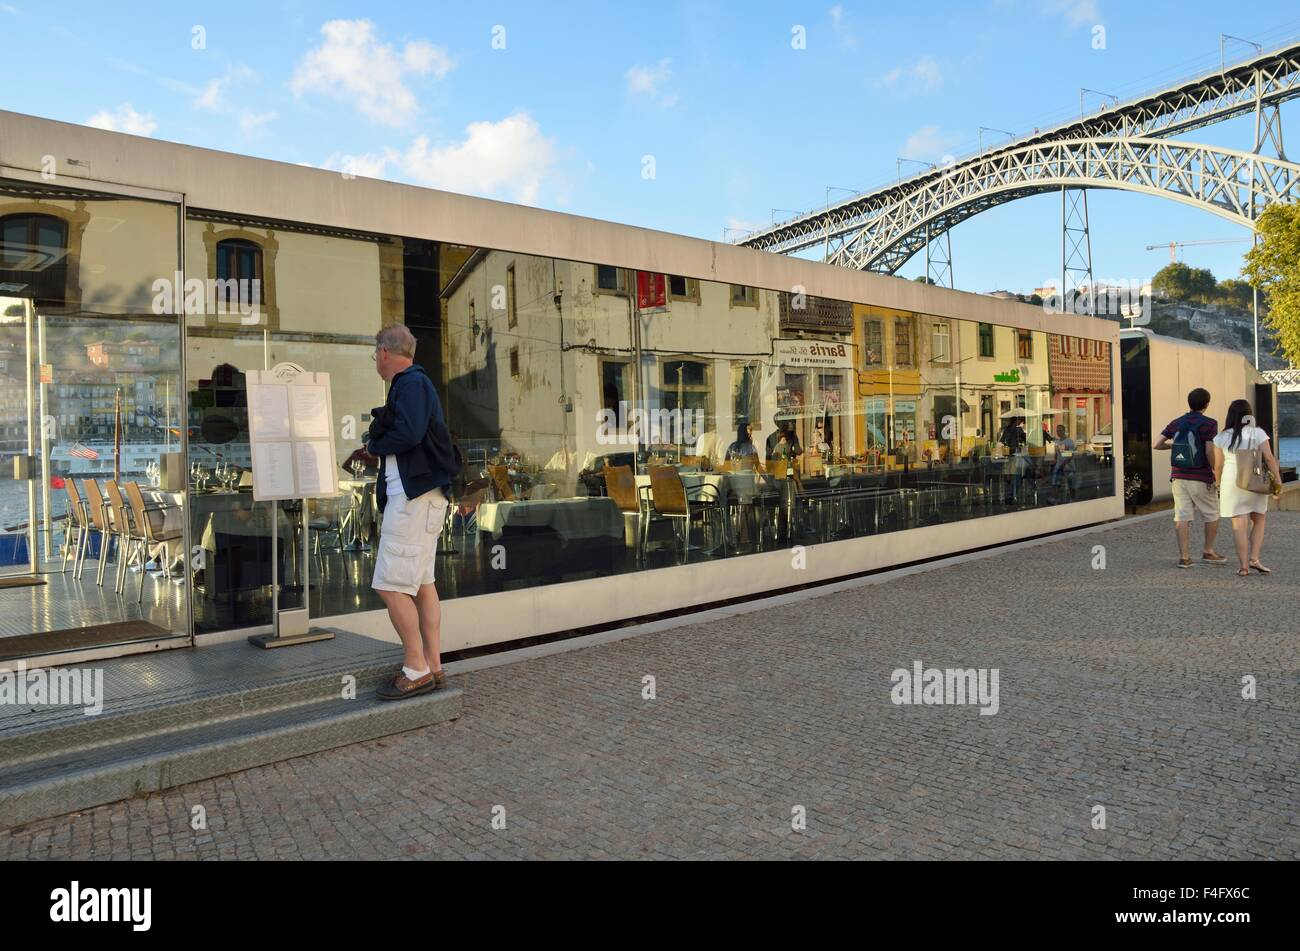 Reflections on crystal restaurant located in Gaia with the Don Luis Bridge at the end in Porto, Portugal. - Stock Image